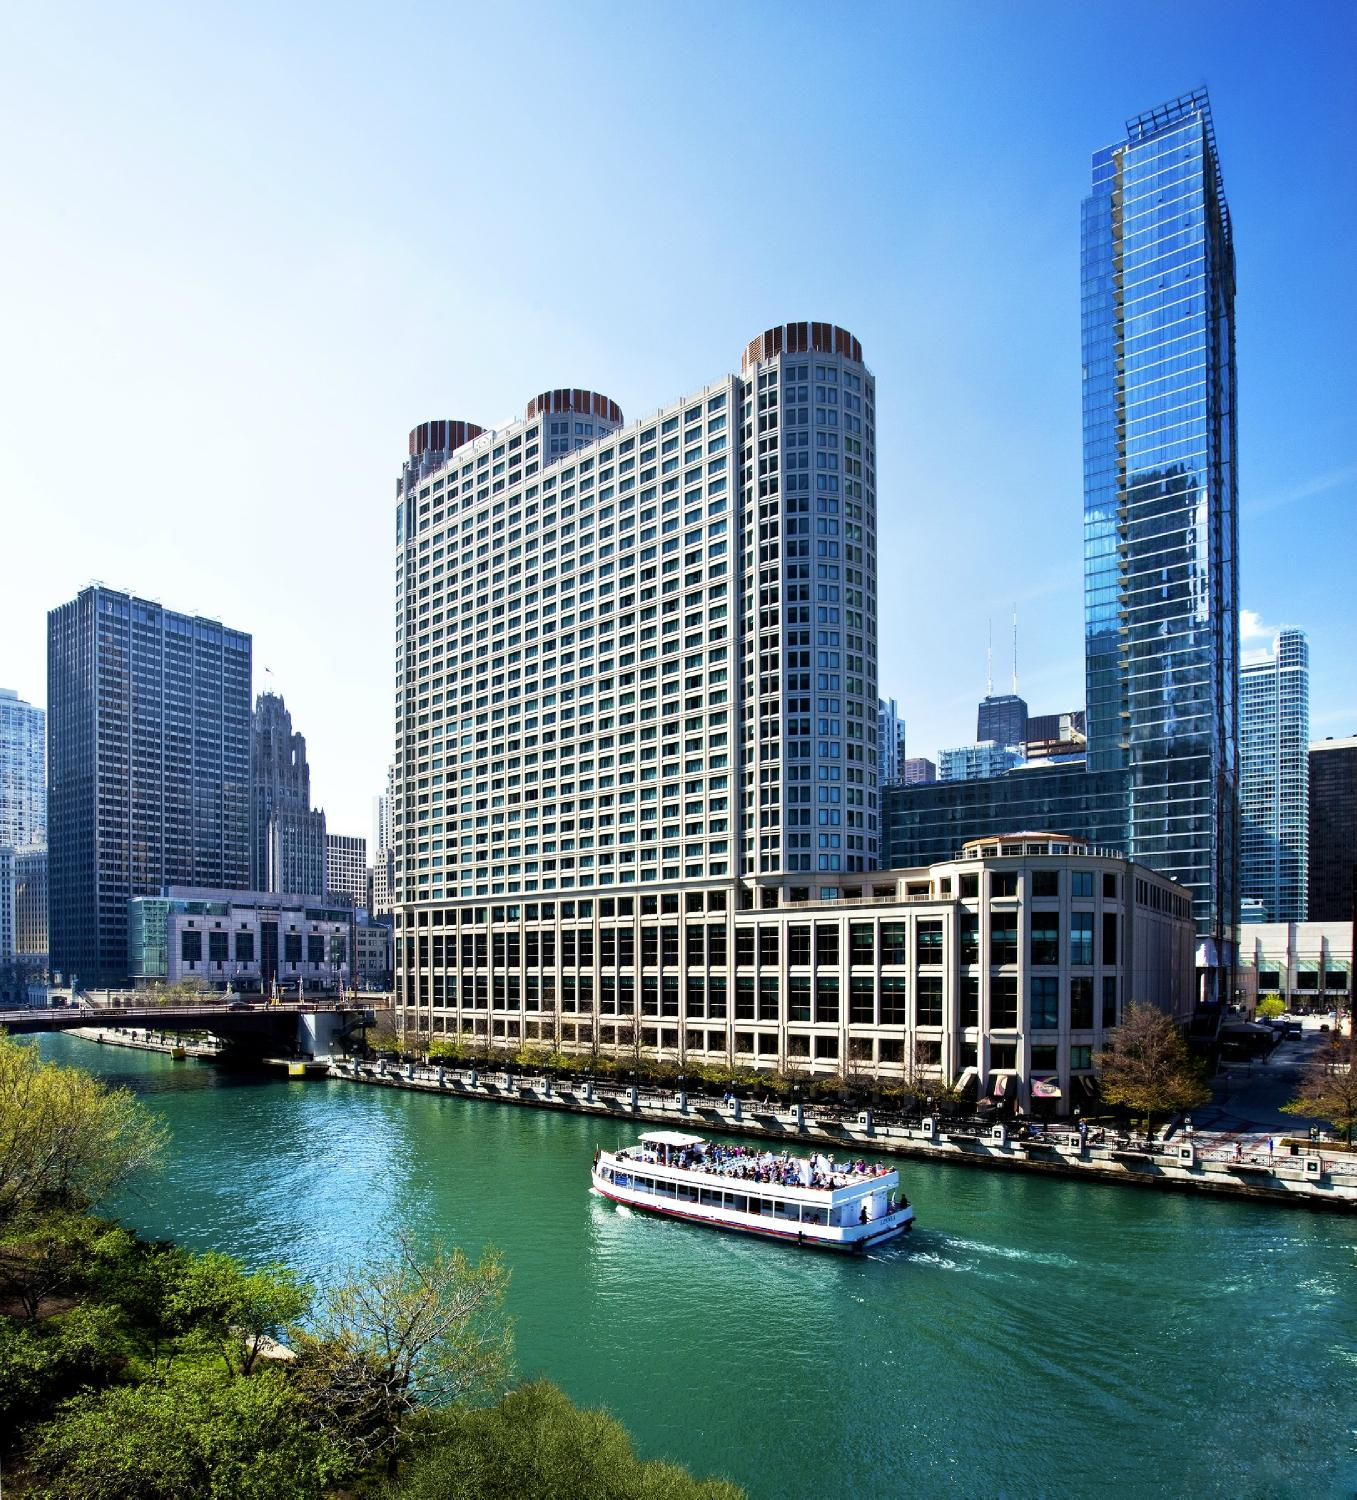 Sheraton Chicago Hotel and Towers